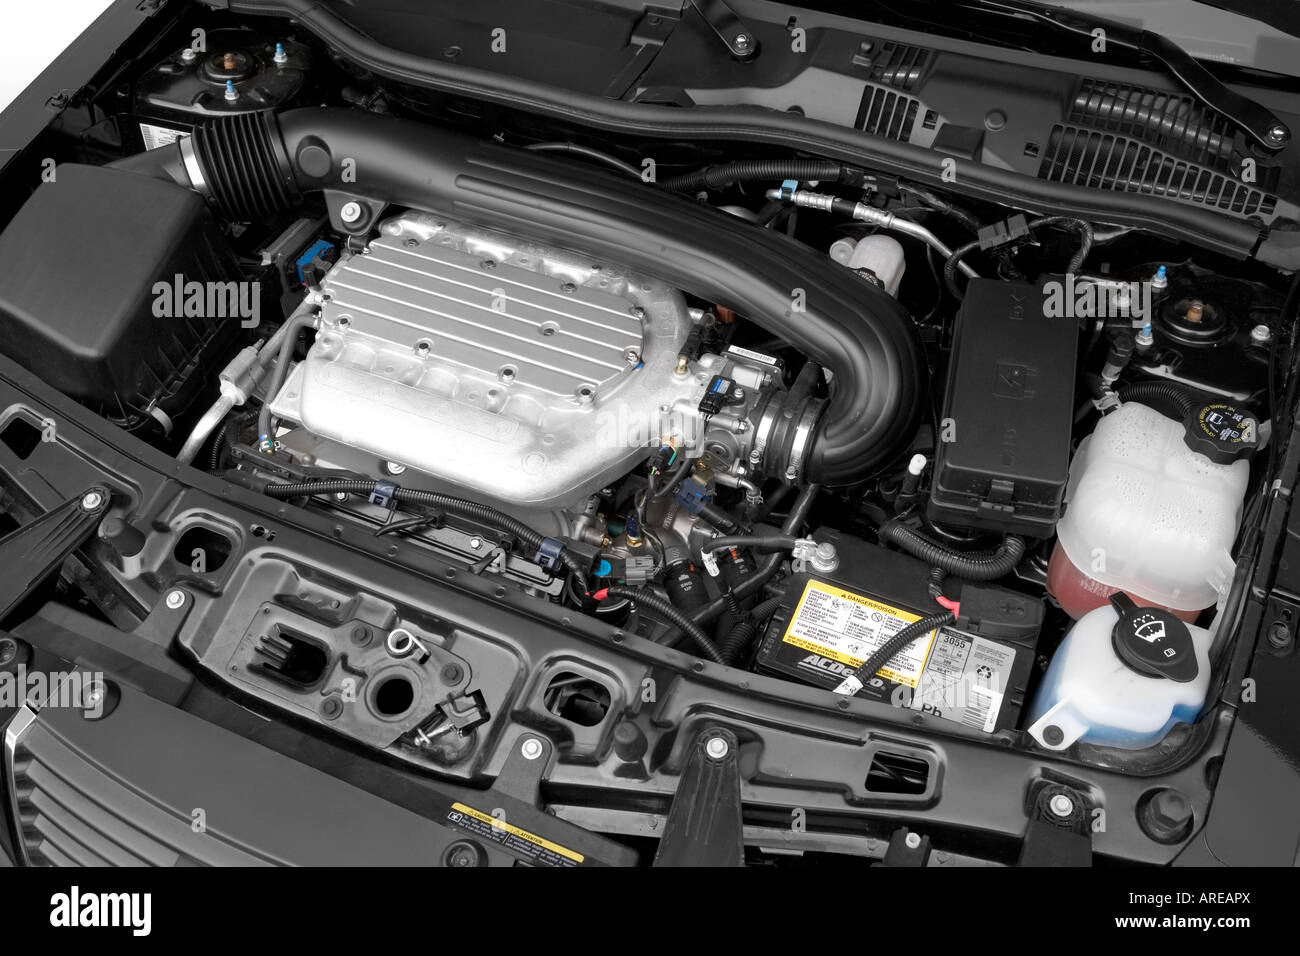 2006 Saturn Vue V6 AWD in Black - Engine Stock Photo: 16028593 - Alamy